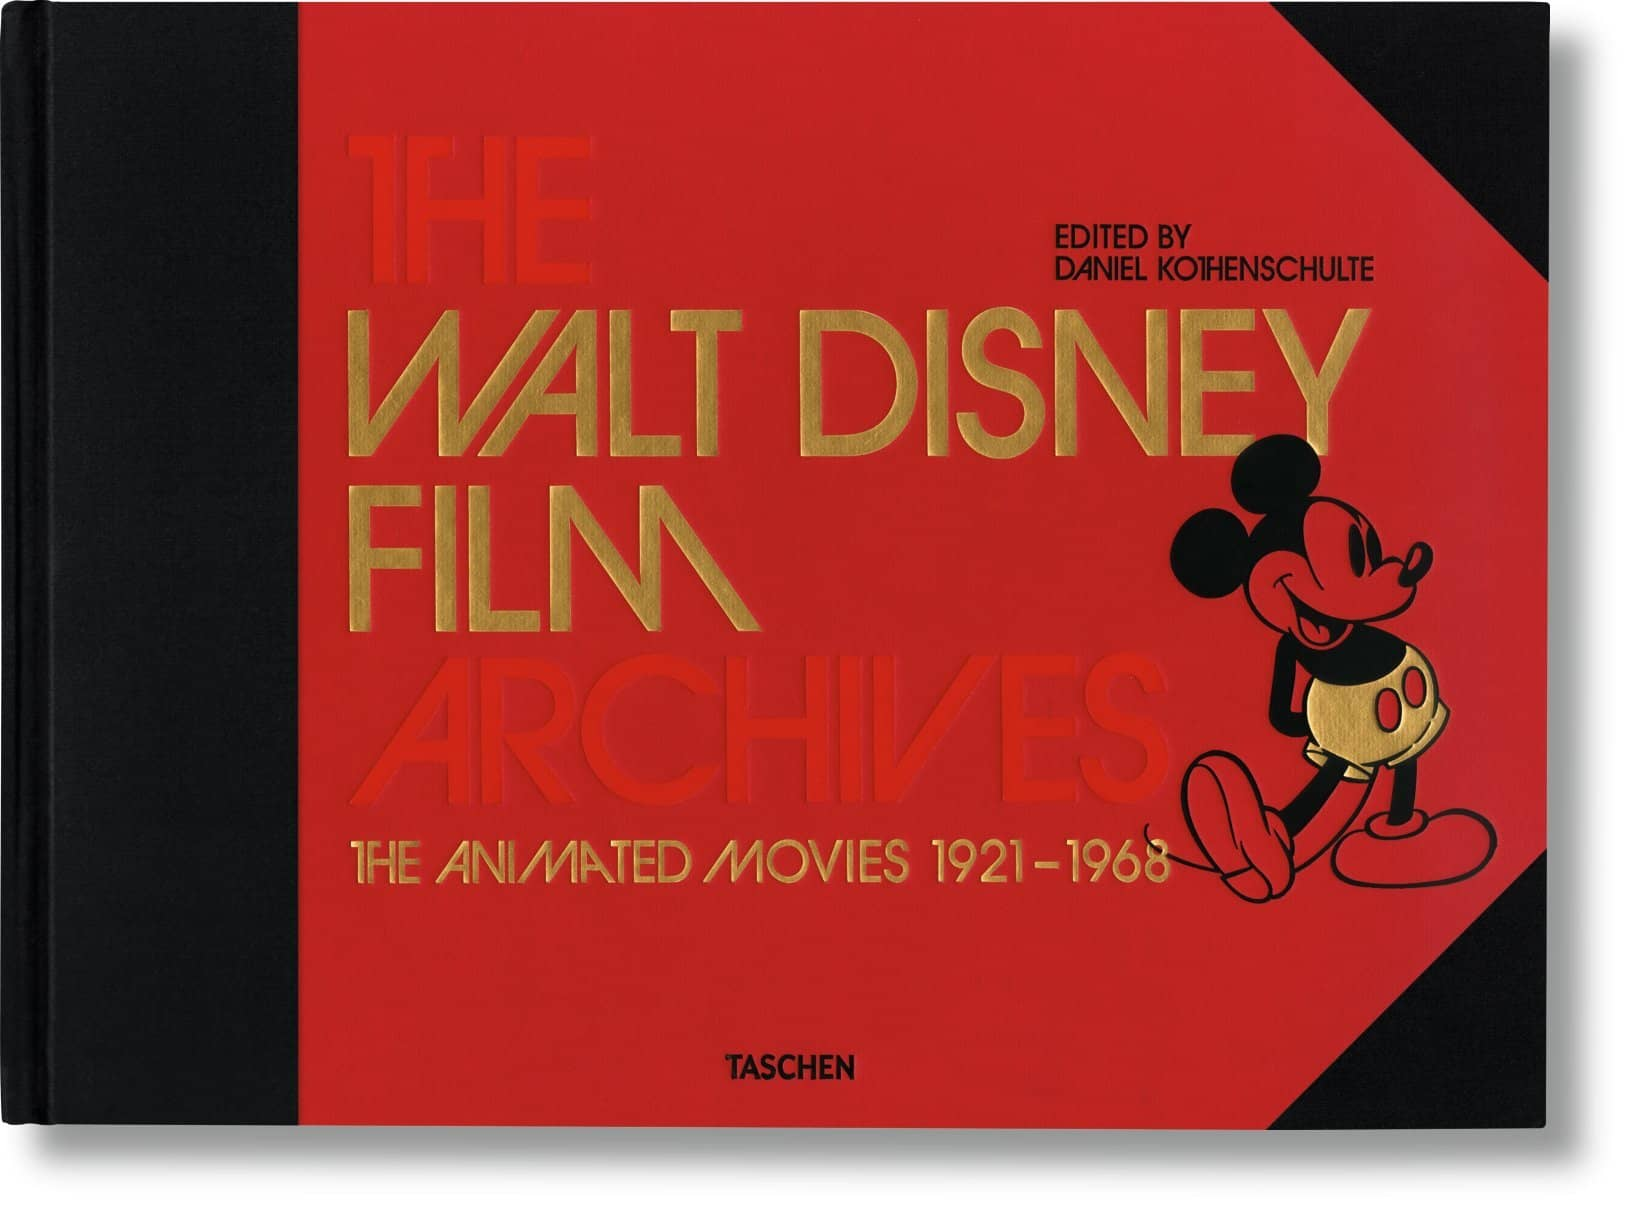 THE WALT DISNEY FILM ARCHIVES (THE ANIMATED MOVIES 1921-1968)